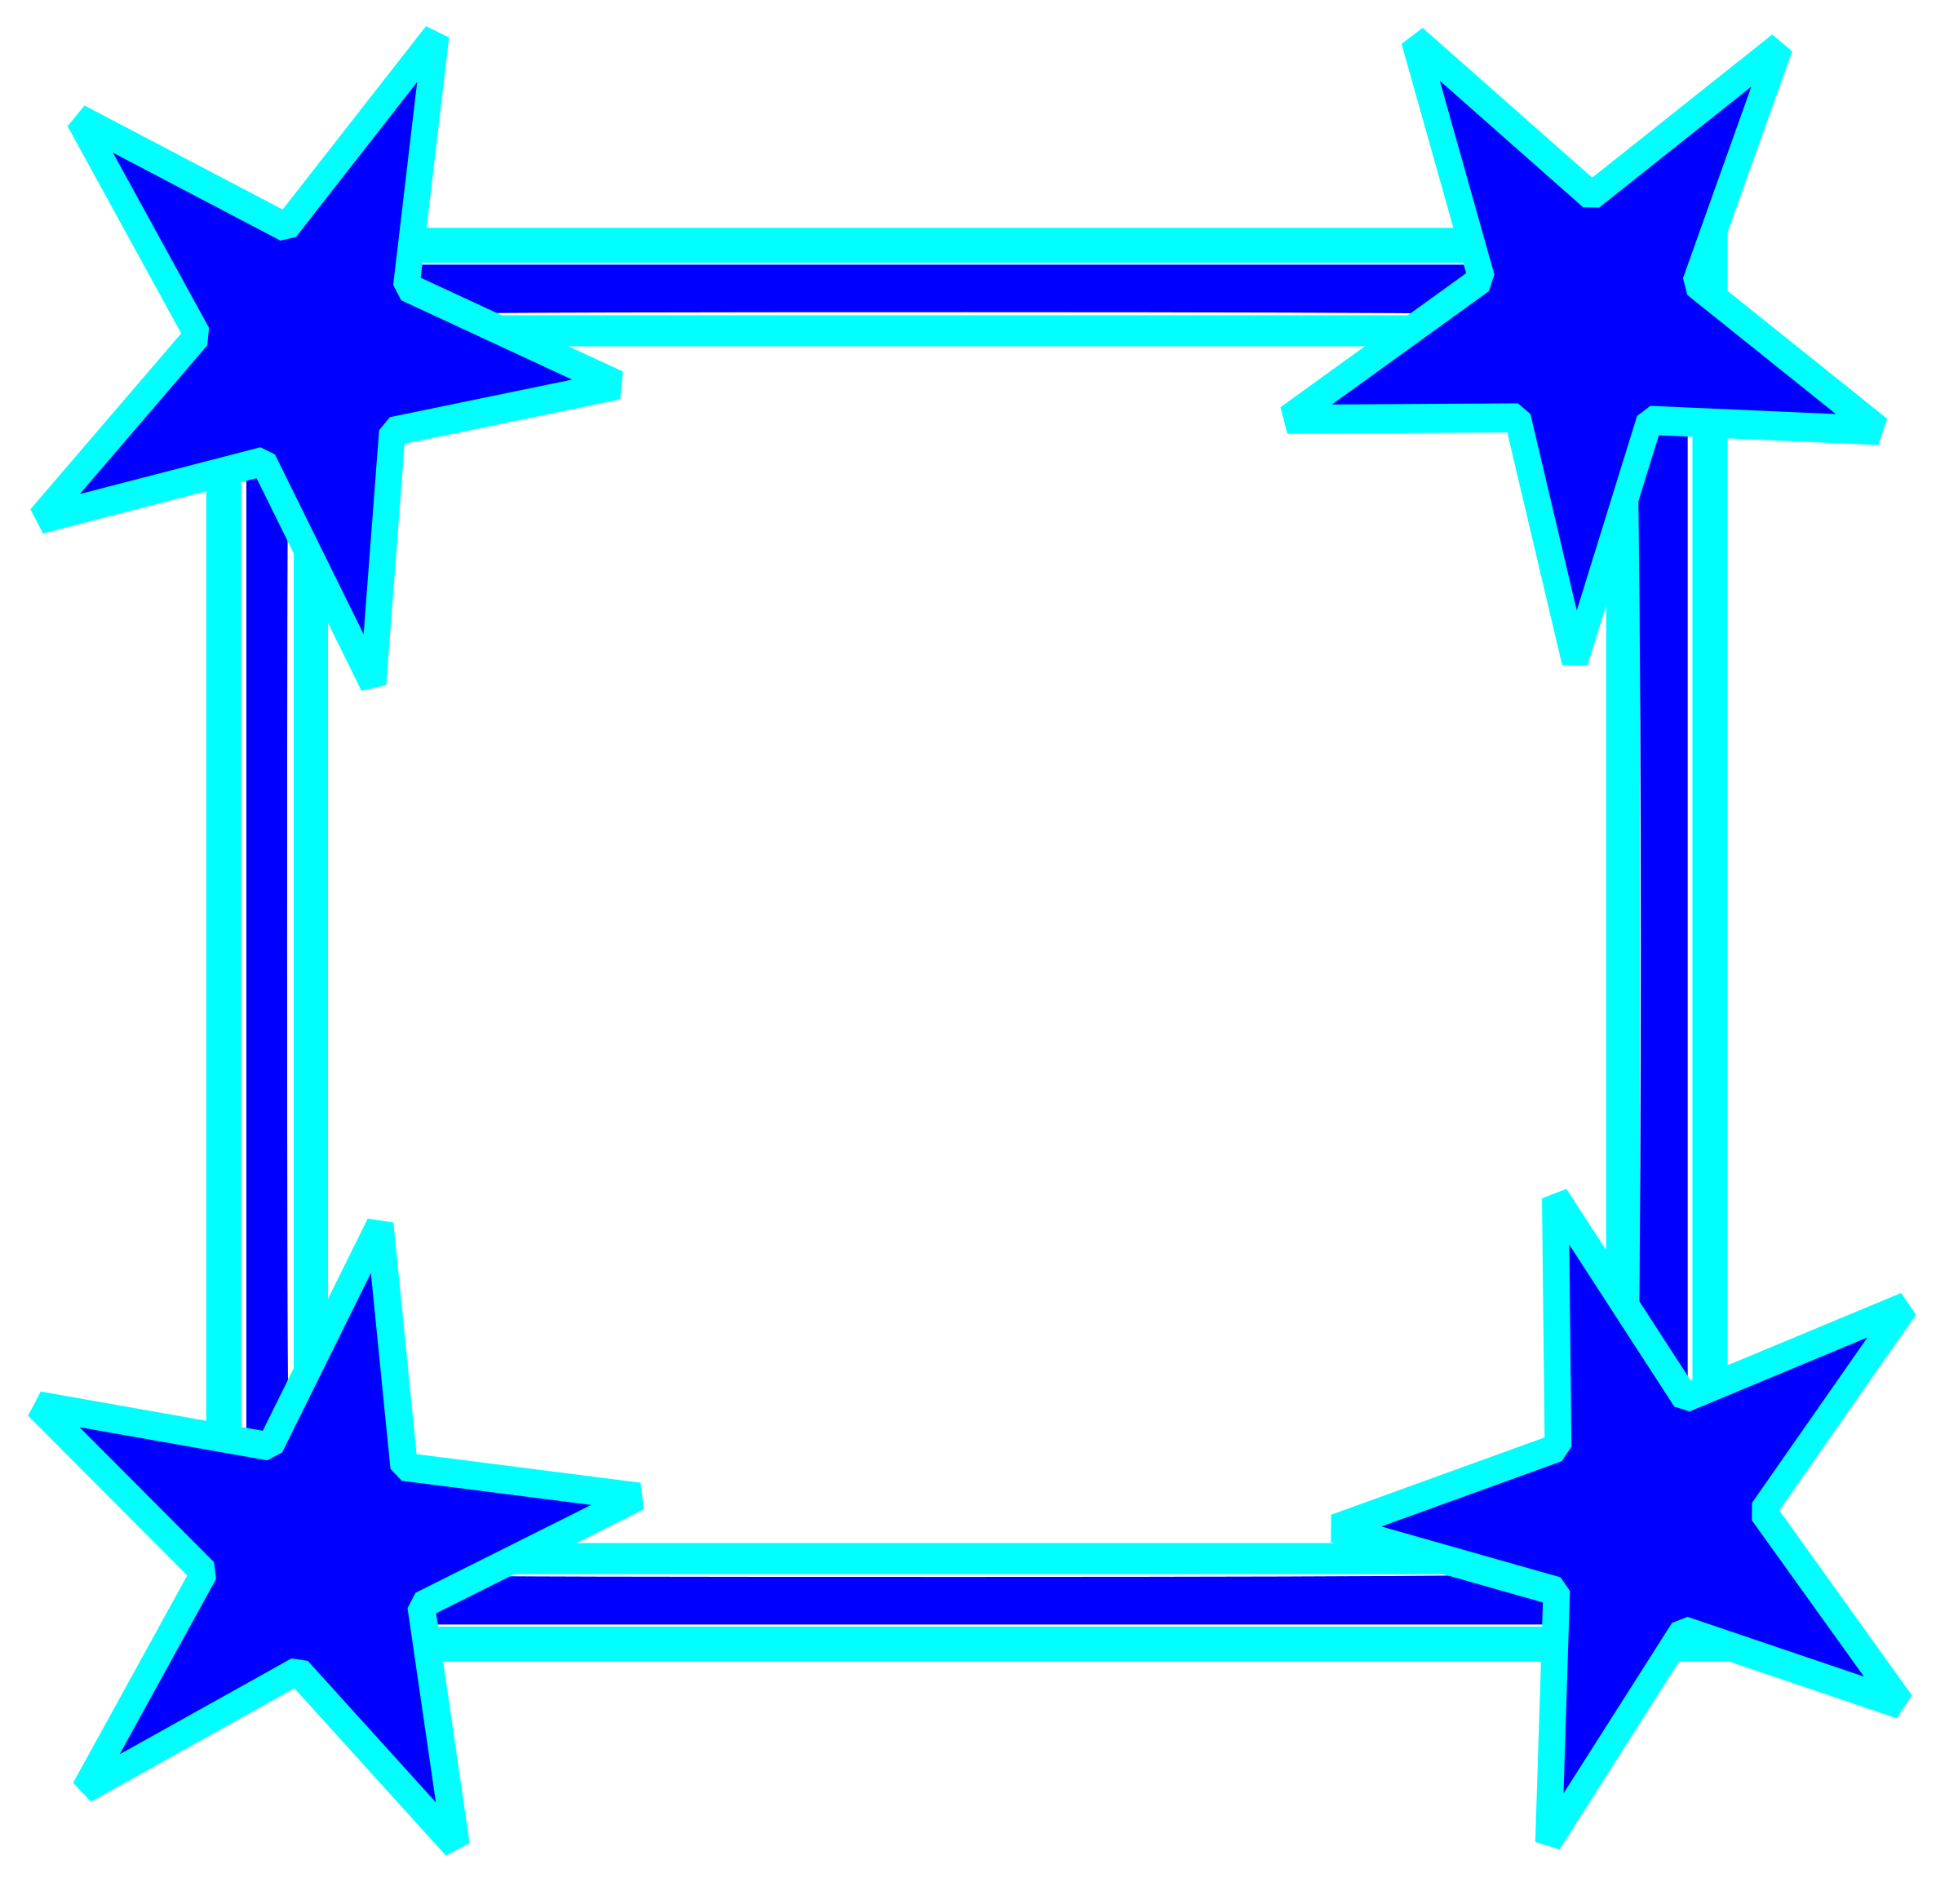 Clipart frame simple. Bright blue star cornered